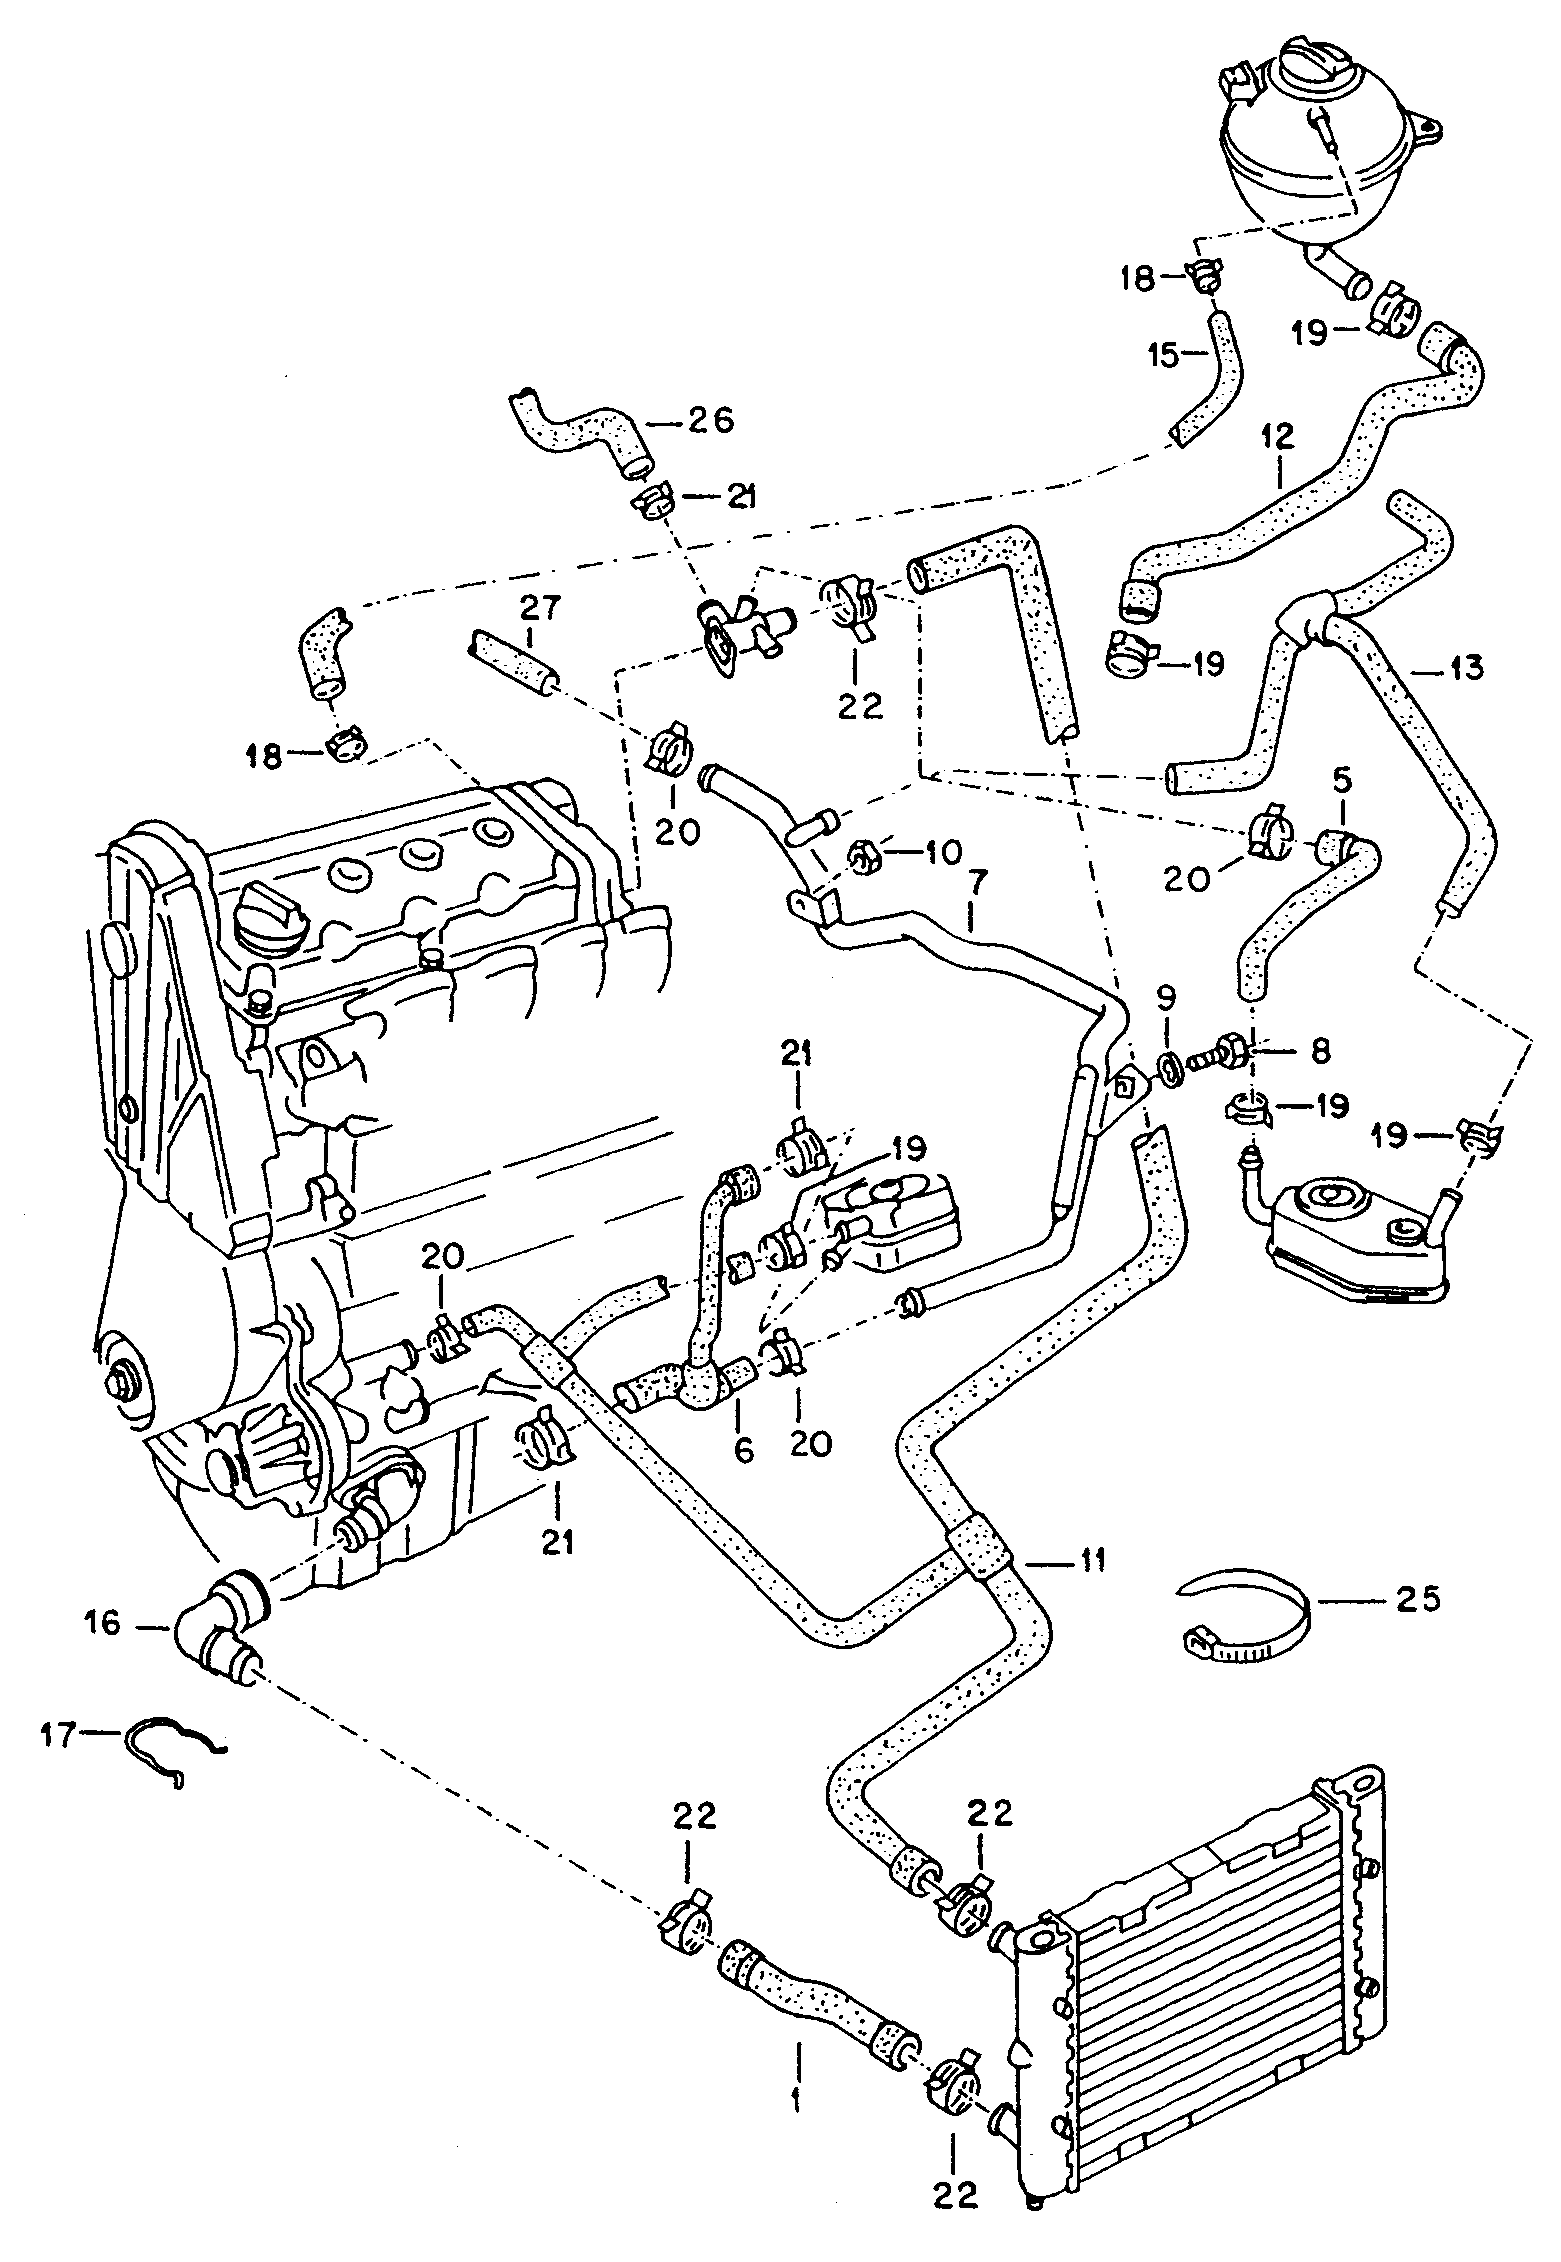 Vw Jetta Coolant System Diagram